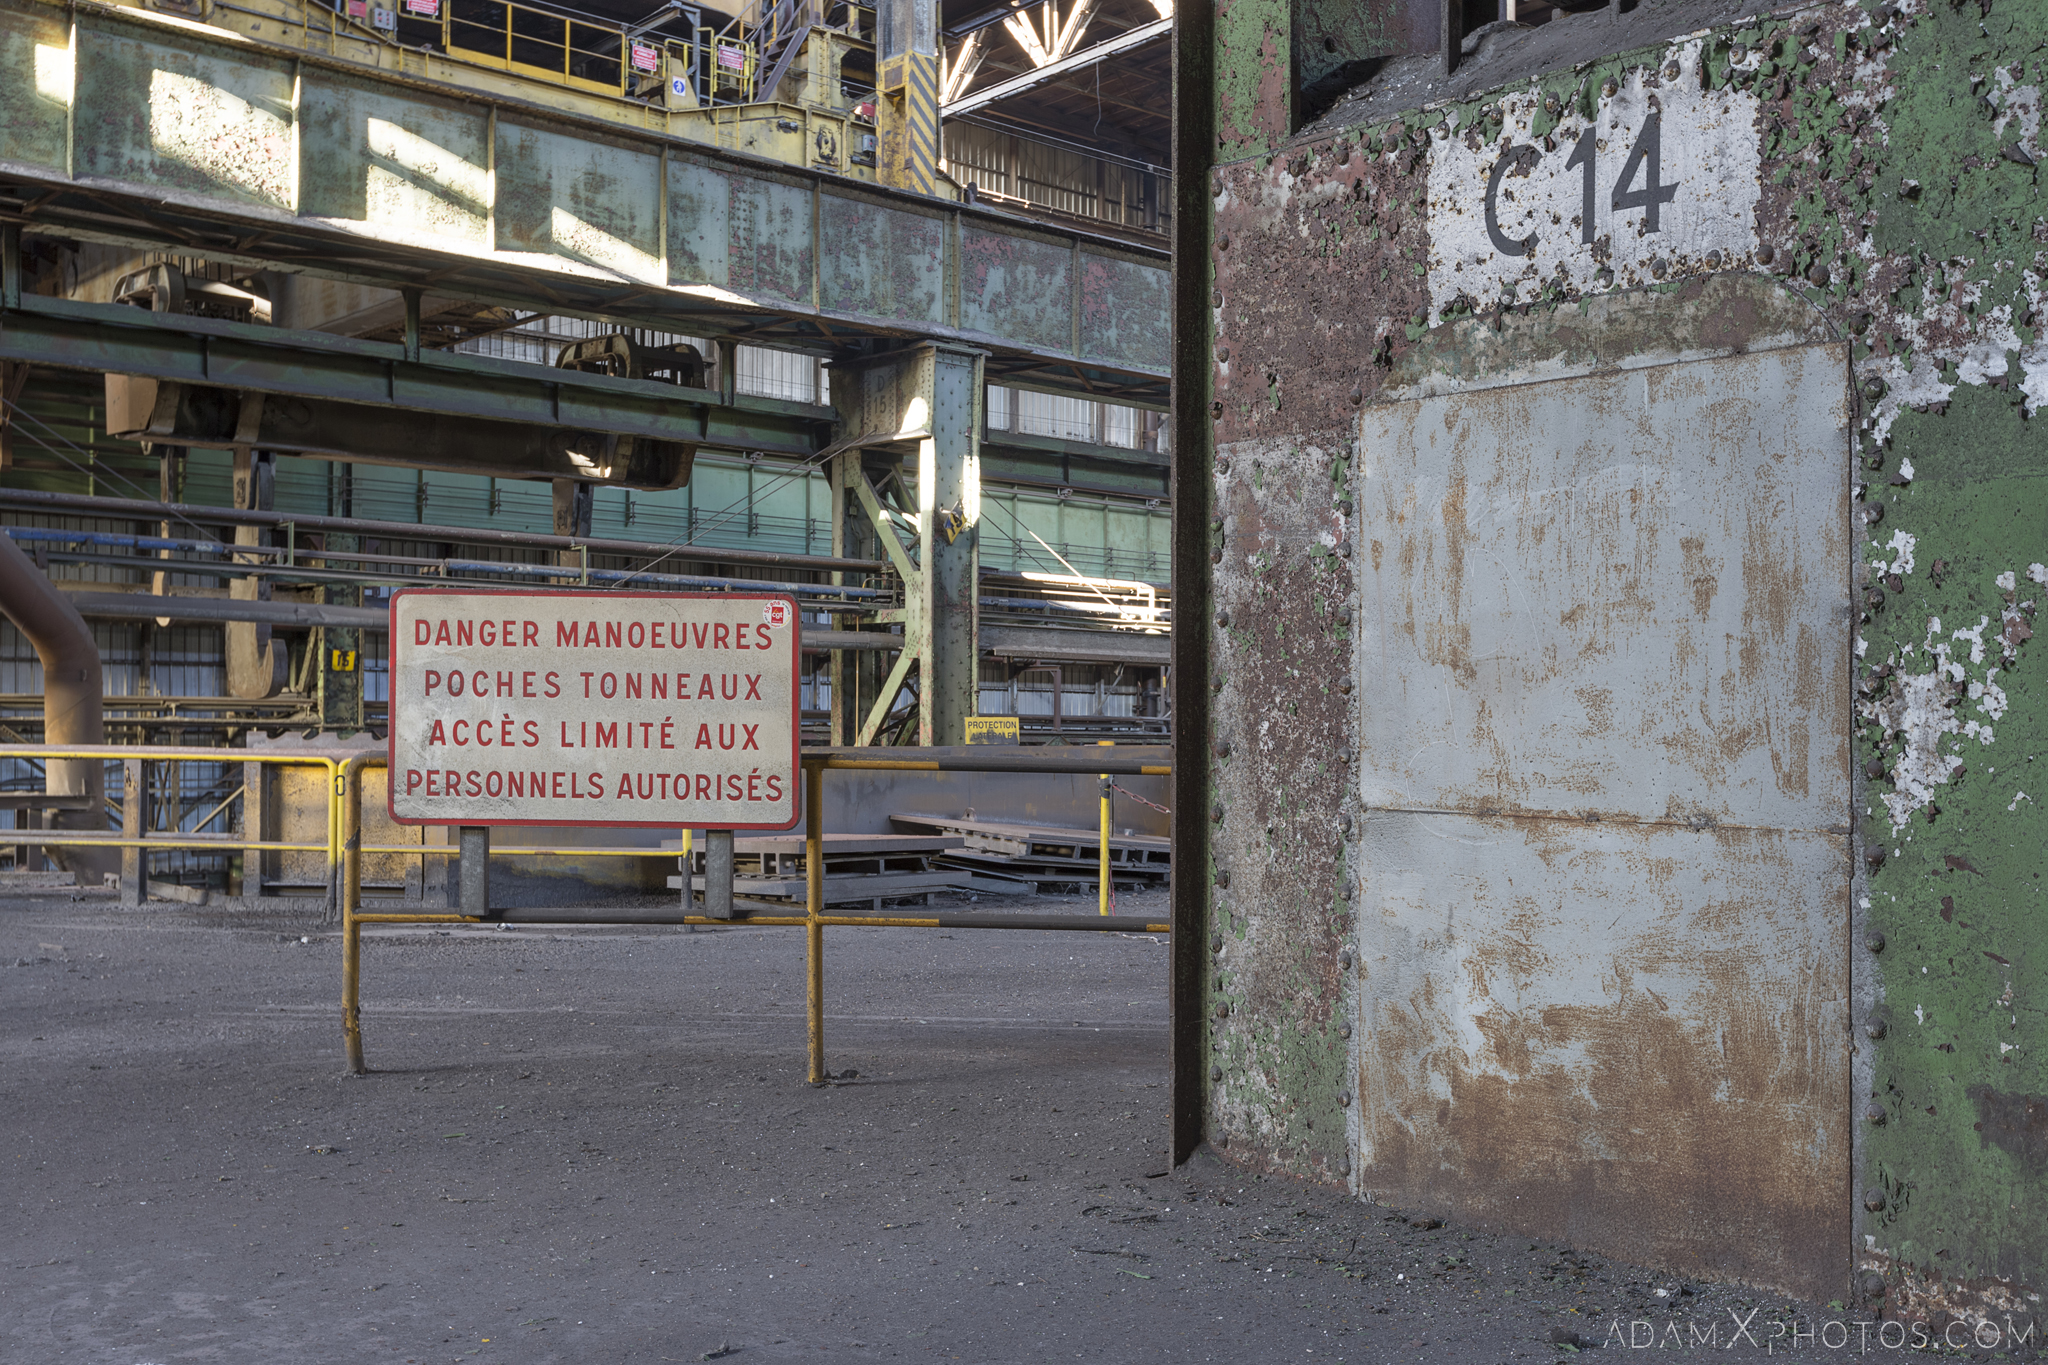 steel works warning danger sign HFX Florange Hayange ArcelorMittal blast furnaces steel works plant Industrial Industry Adam X Urbex Urban Exploration France Access 2017 Abandoned decay lost forgotten derelict location creepy haunting eerie